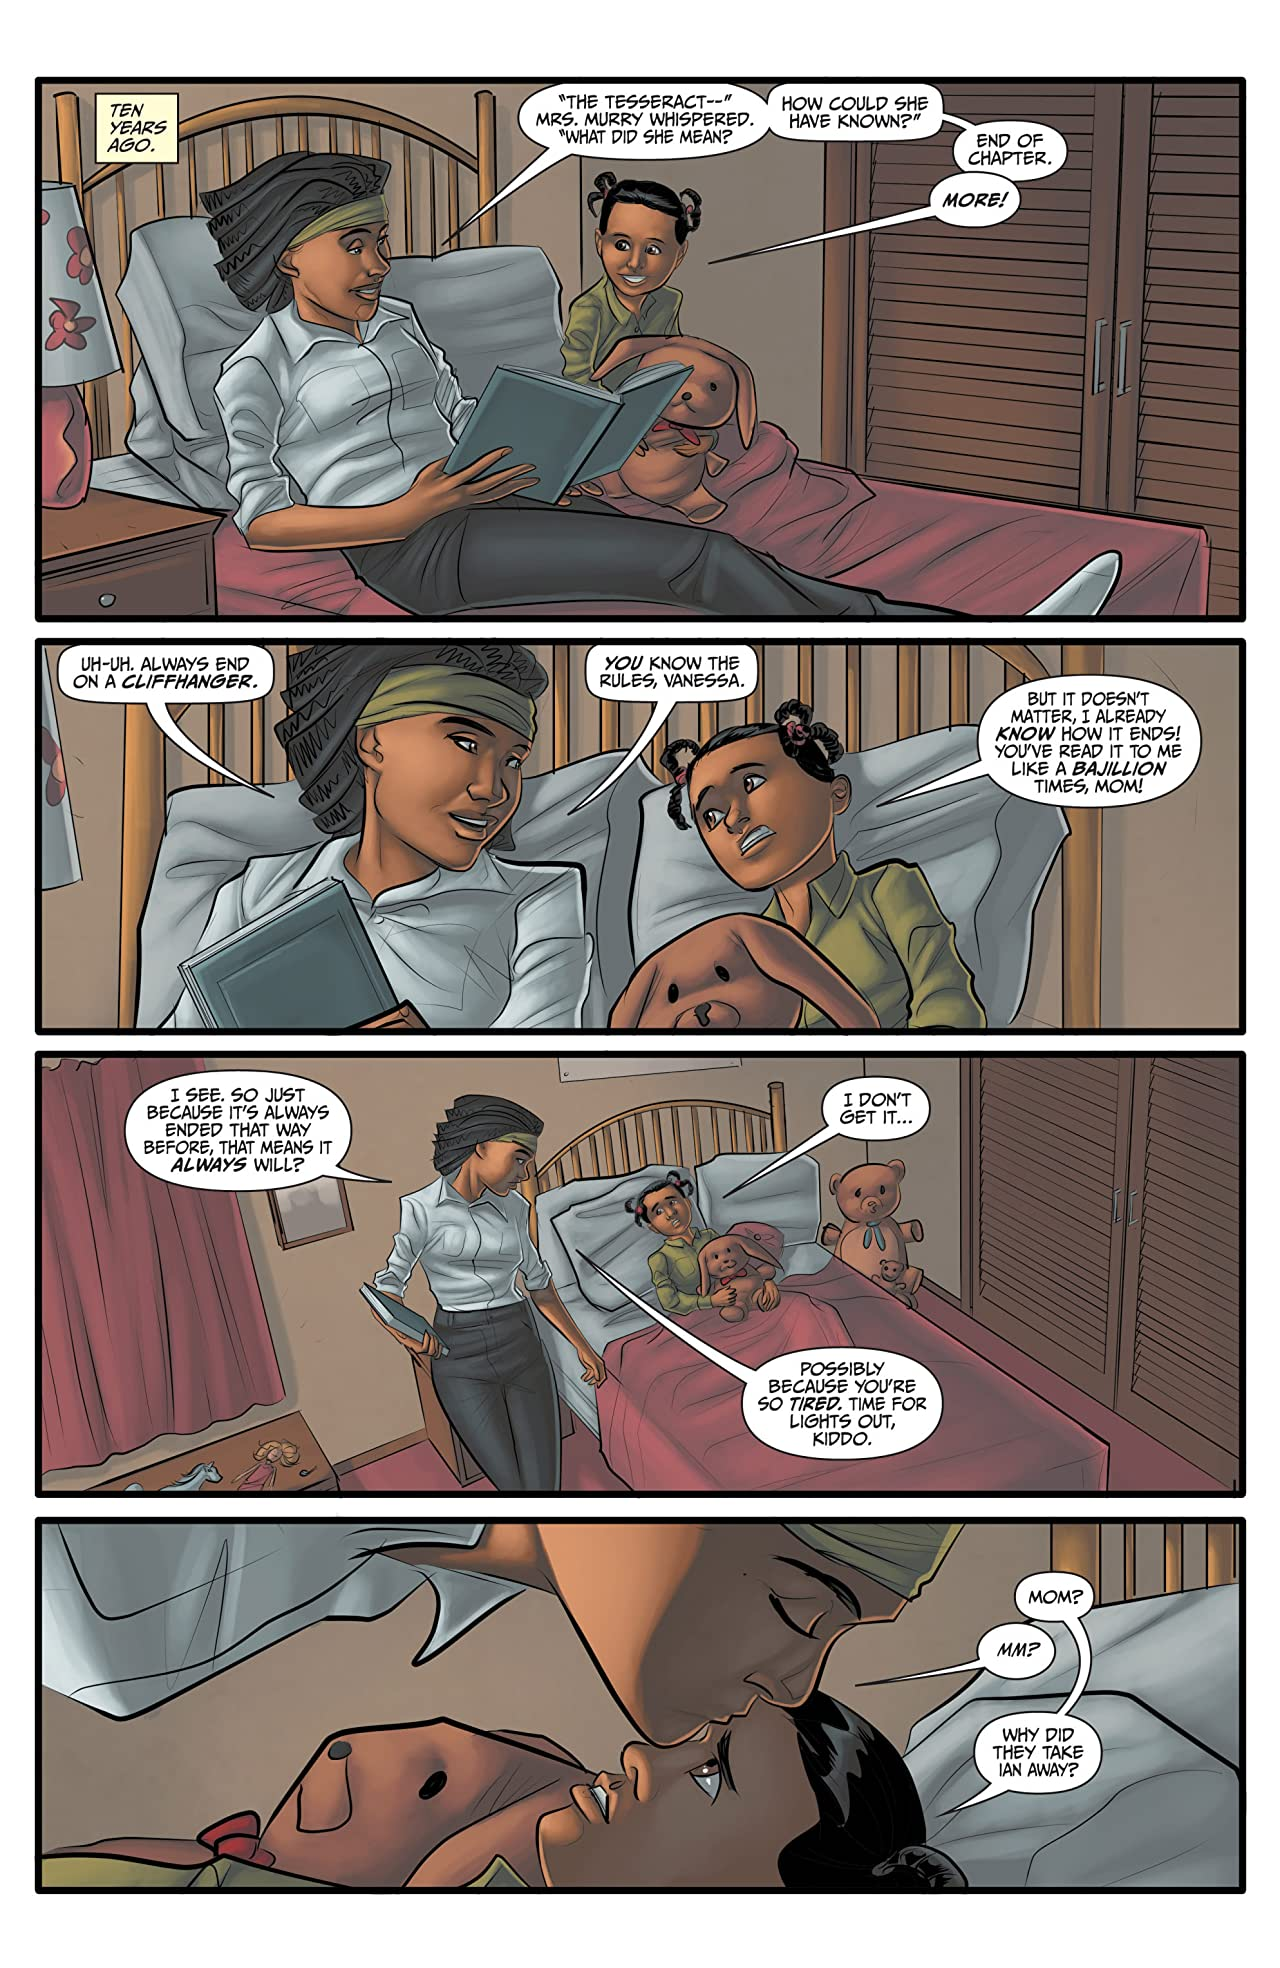 Morning Glories #44